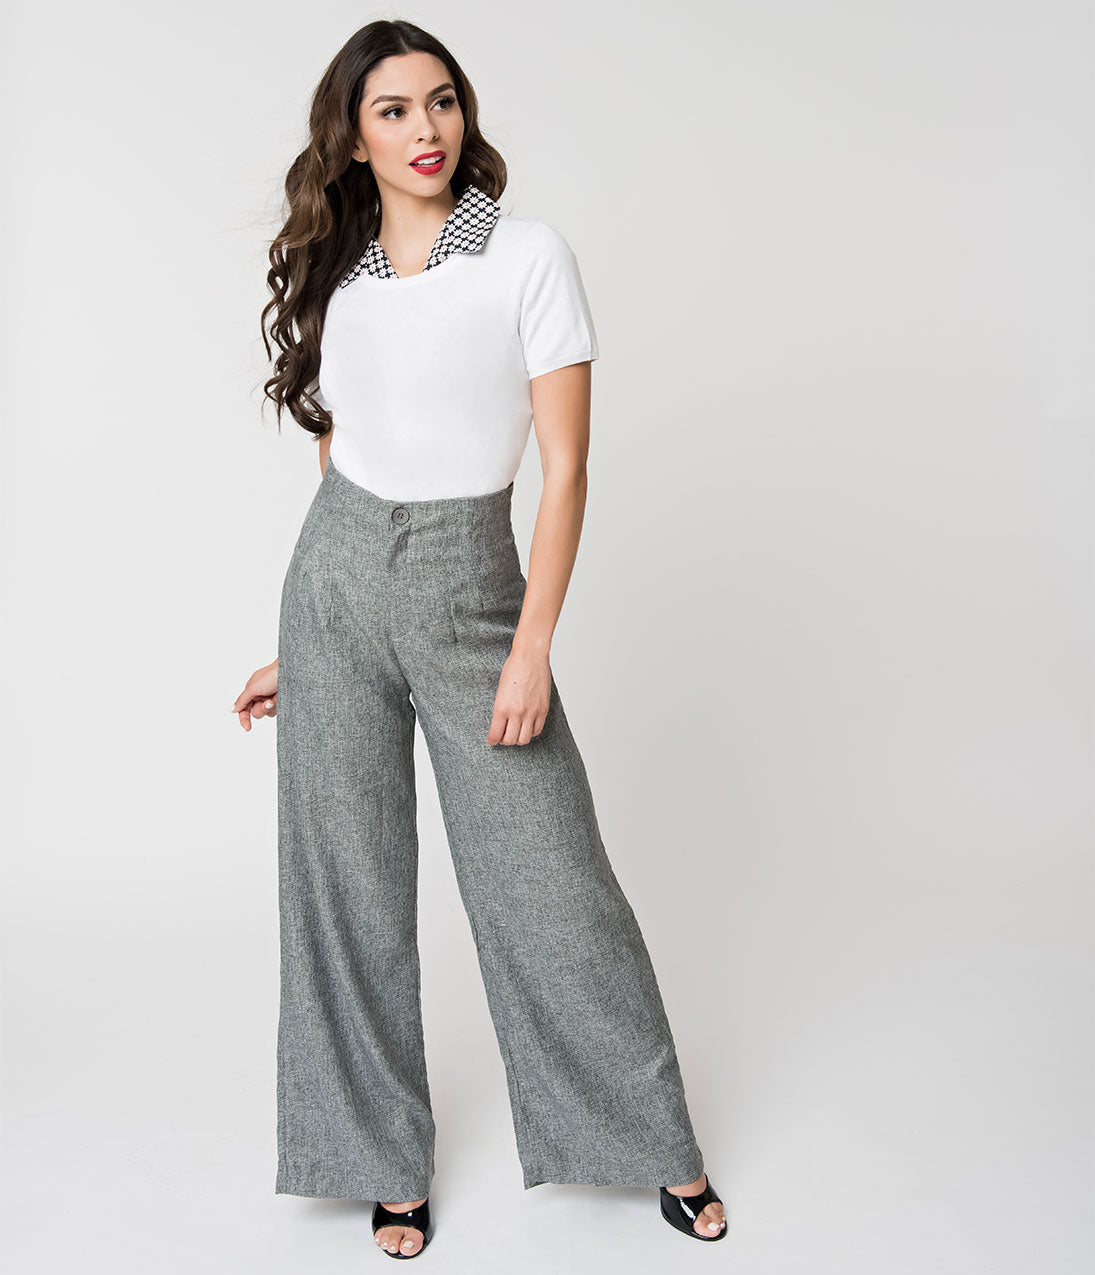 1940s Swing Pants & Sailor Trousers- Wide Leg, High Waist Retro Style Charcoal Grey High Waist Wide Leg Pants $42.00 AT vintagedancer.com